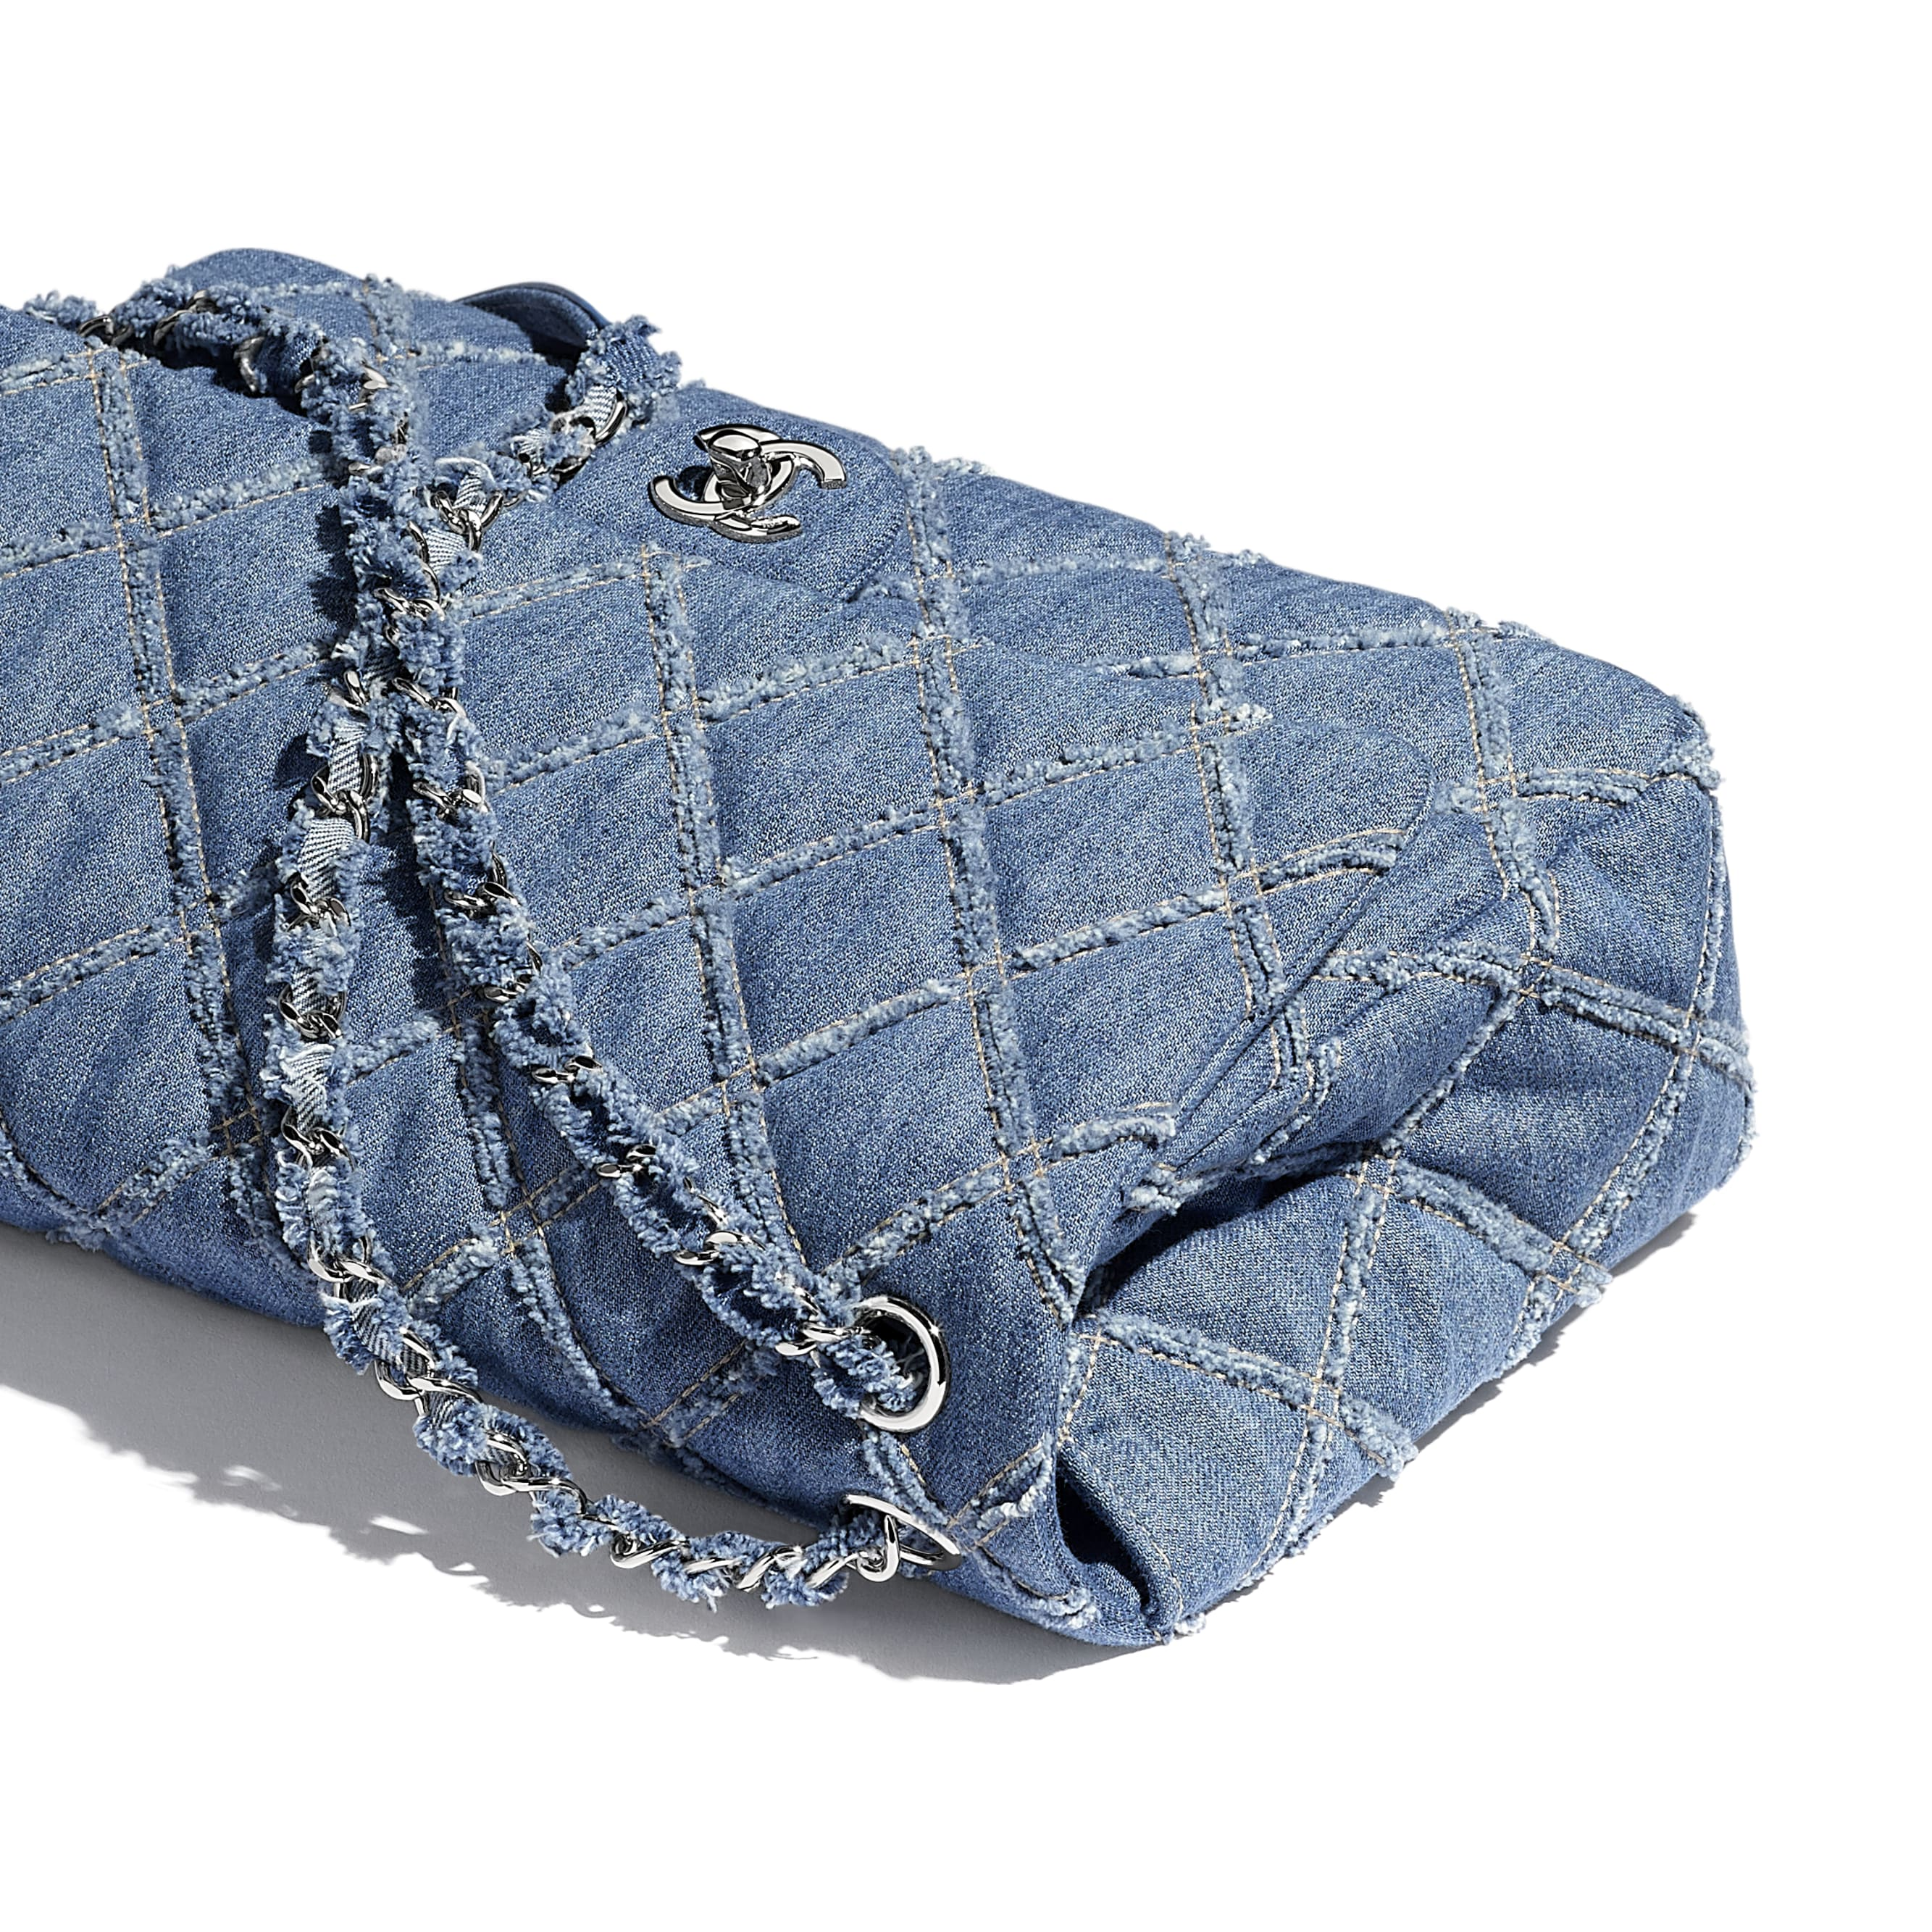 Large Flap Bag - Blue - Denim & Silver-Tone Metal - Extra view - see standard sized version